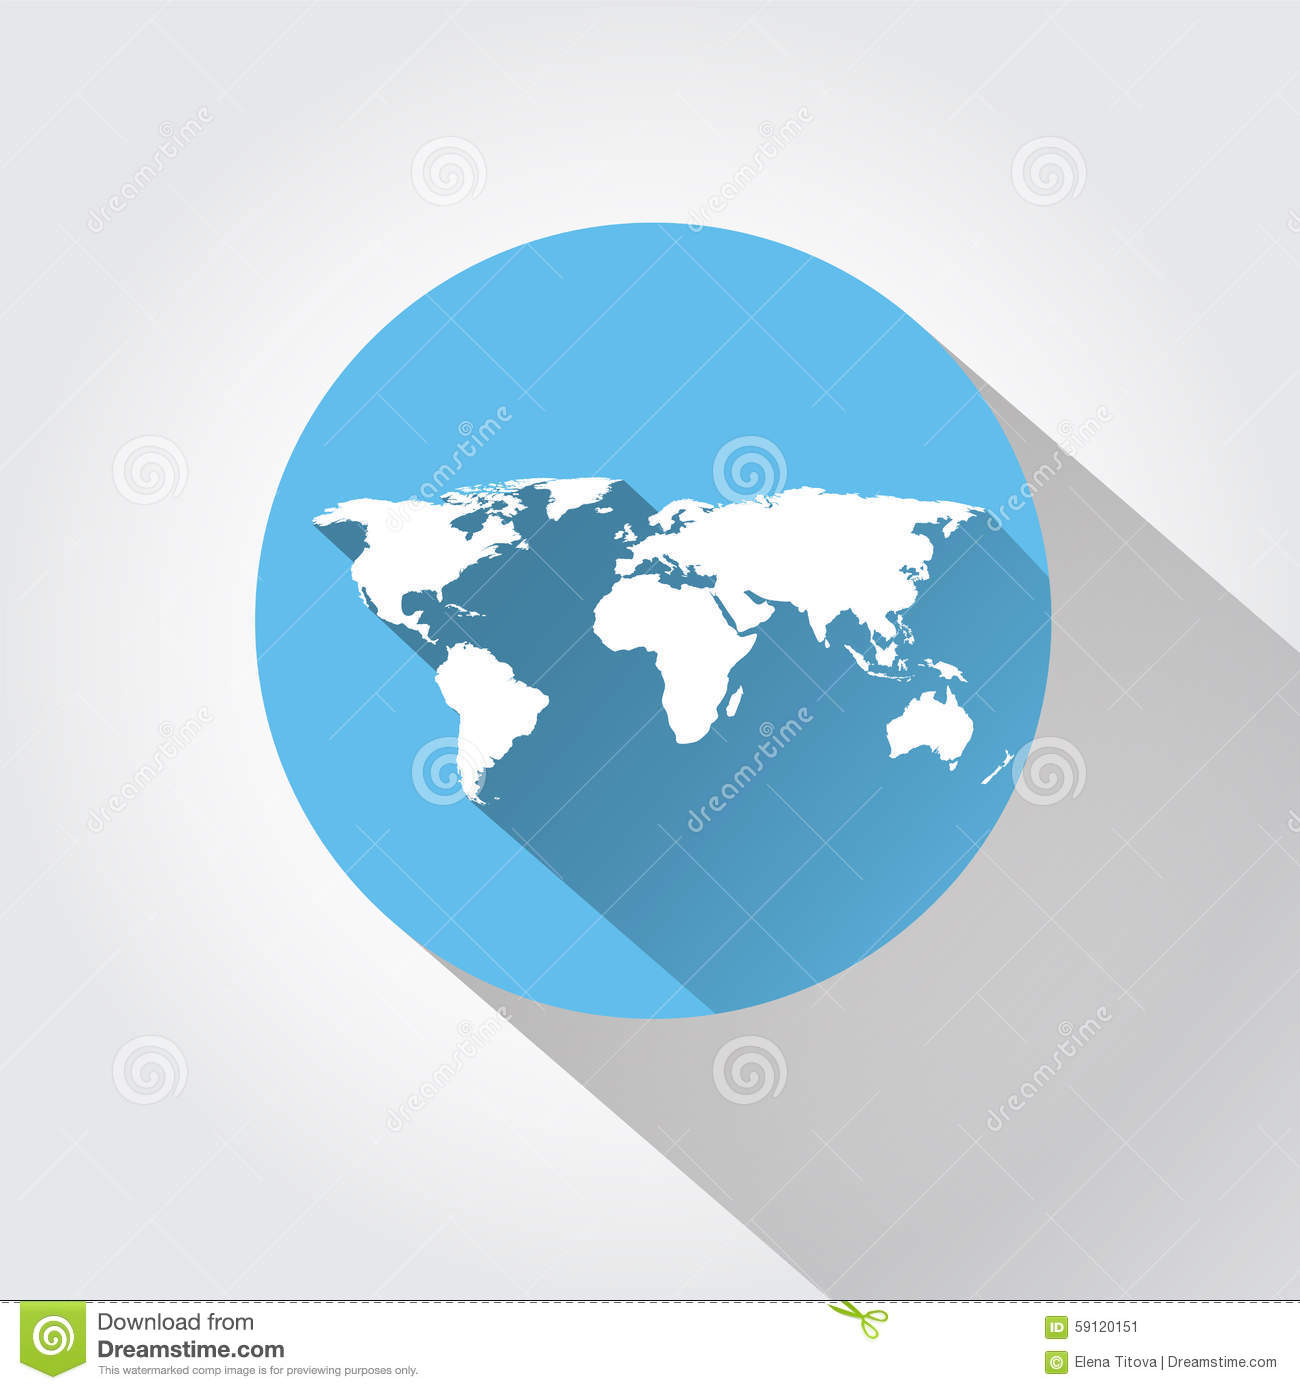 World map flat design long shadow stock vector illustration world map flat design long shadow gumiabroncs